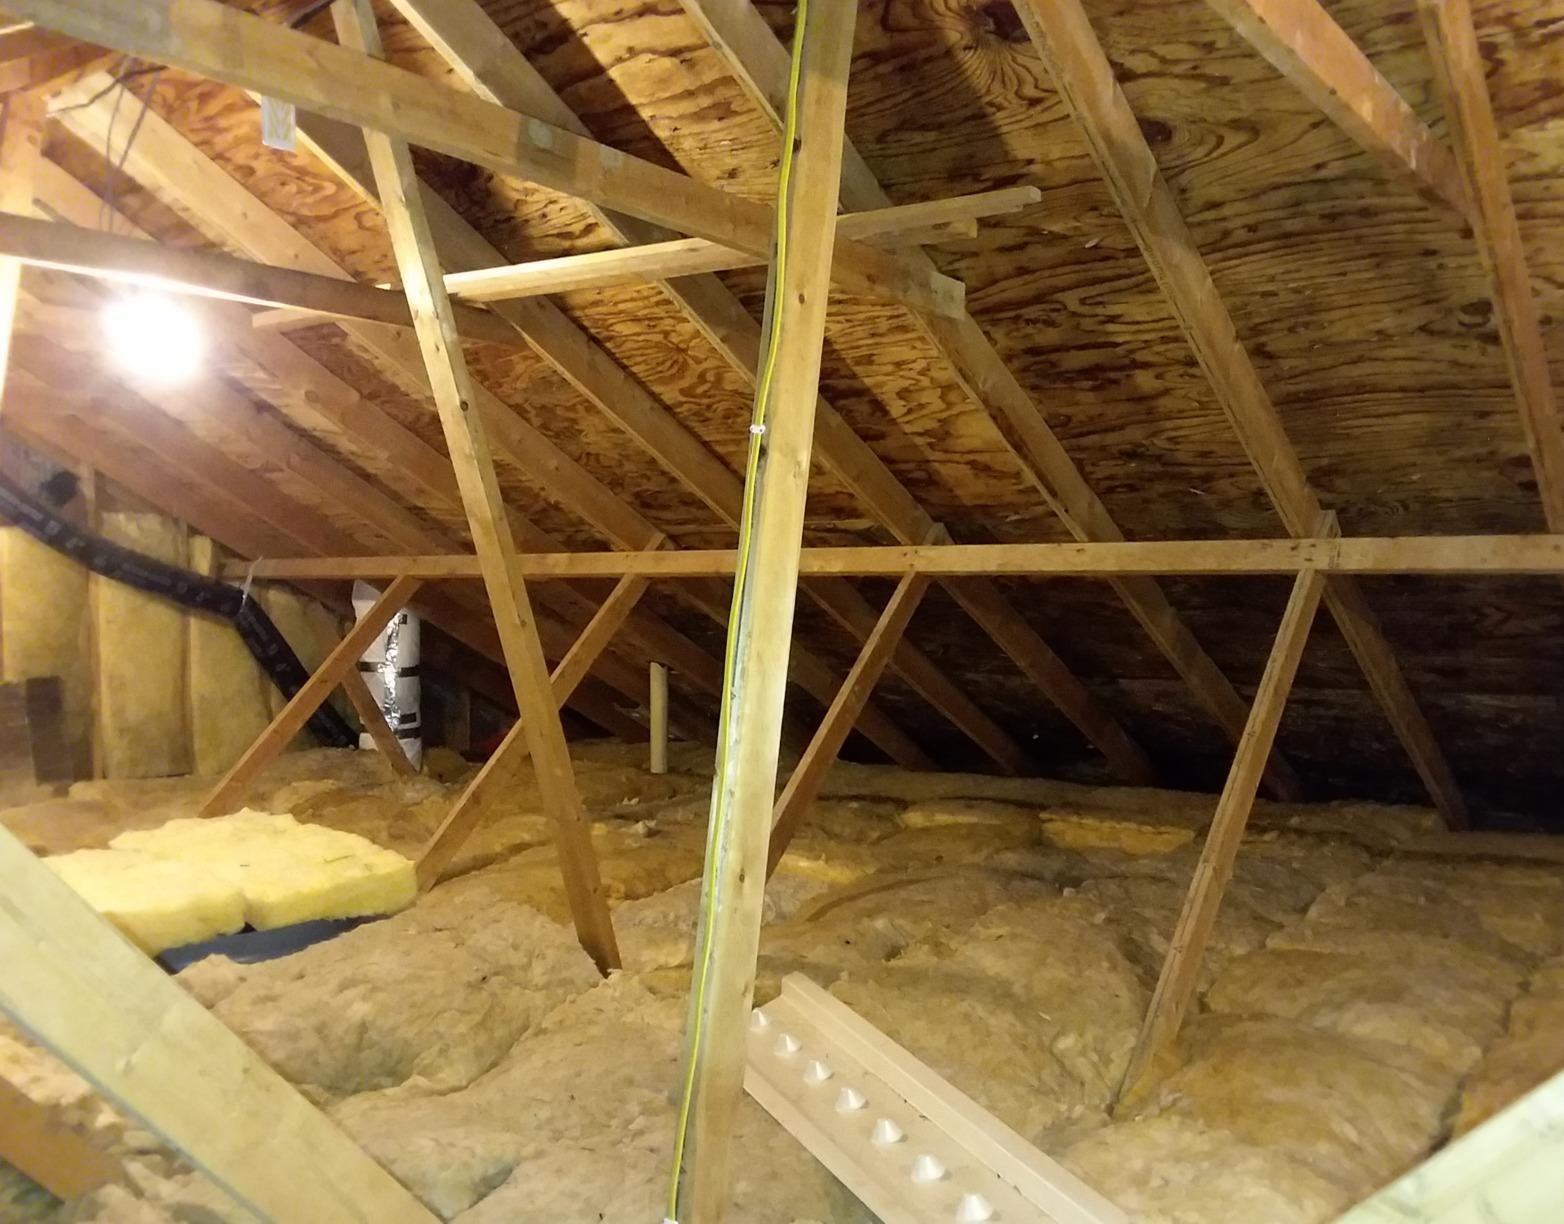 Bellevue Attic Insulation Project - Before Photo